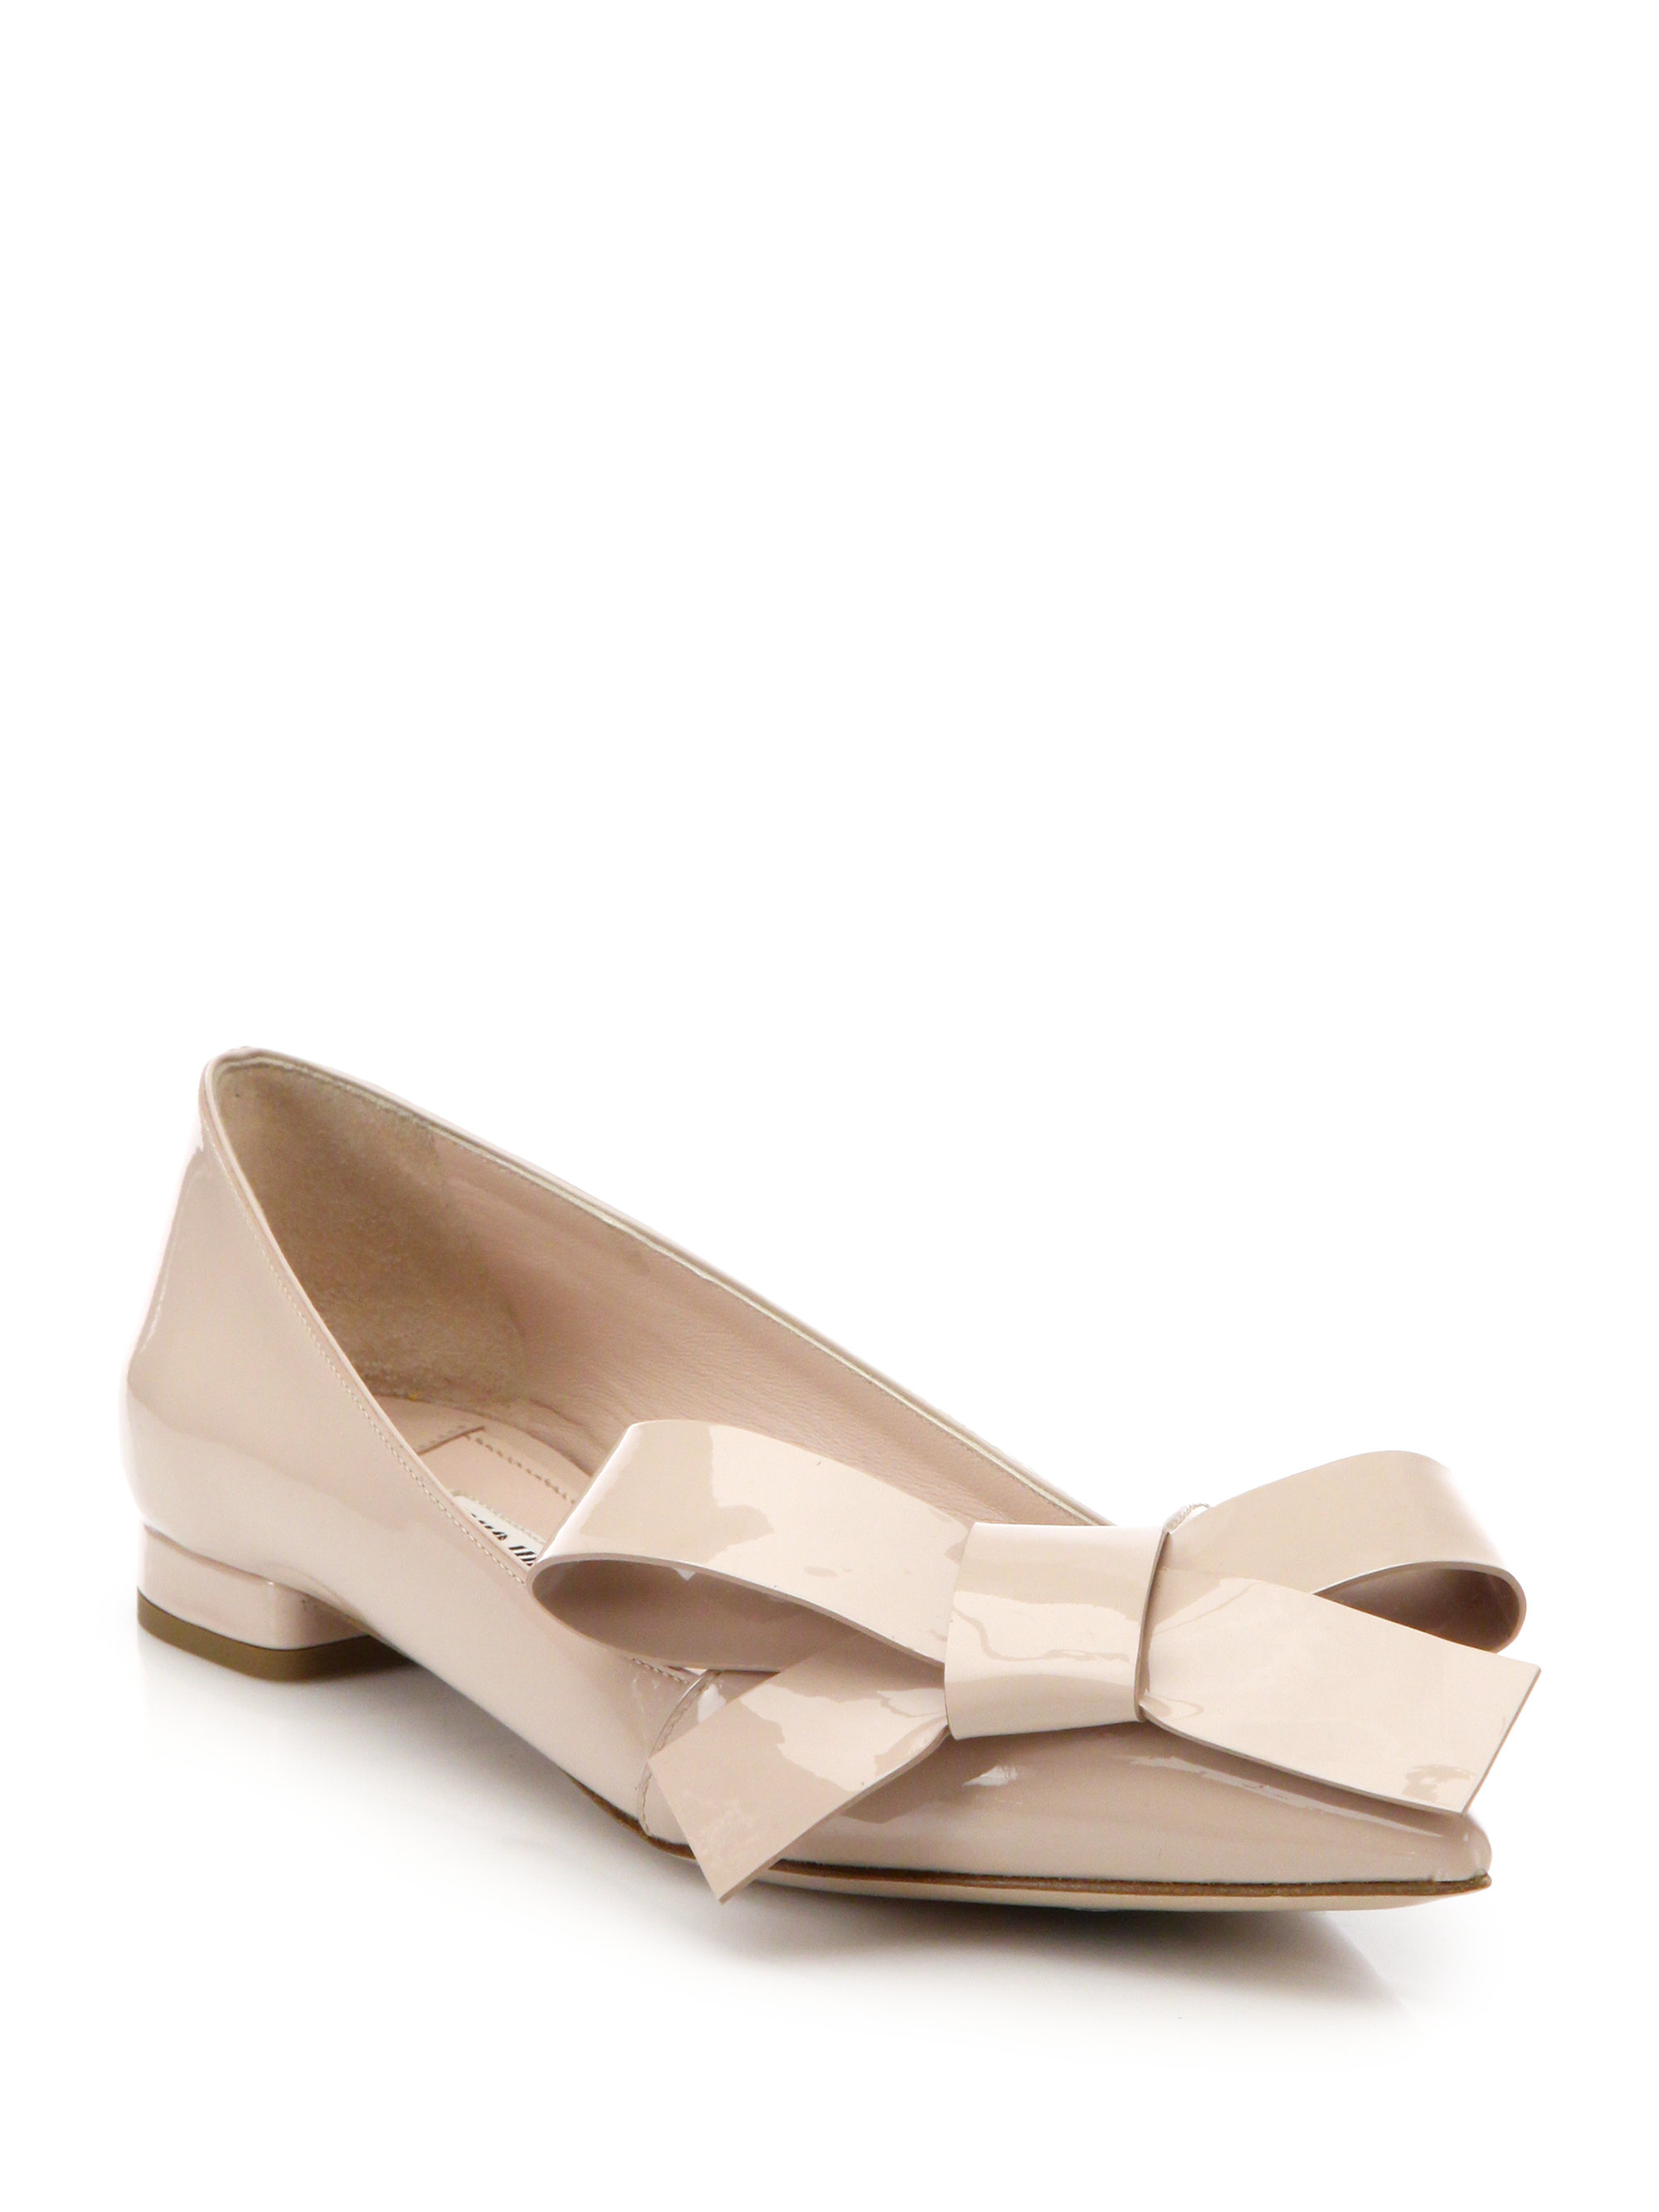 02307ac7681 Lyst - Miu Miu Bow-Detailed Patent-Leather Flats in Pink